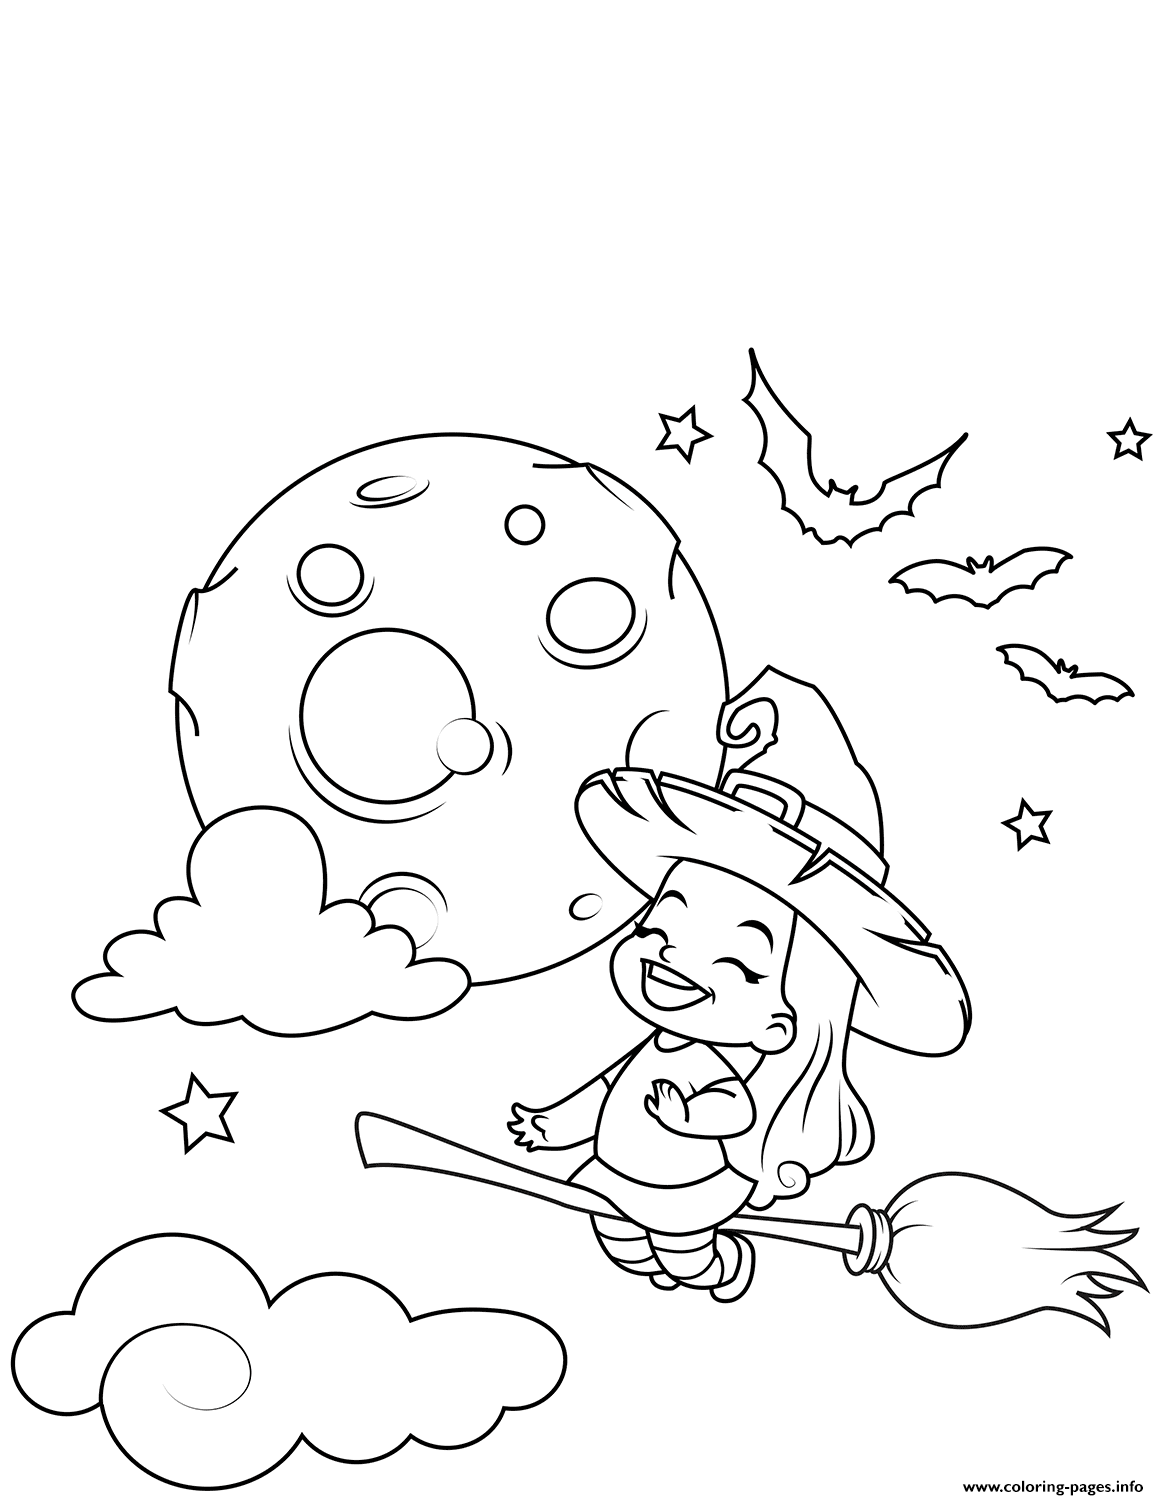 Cute Little Witch Flying On A Broomstick